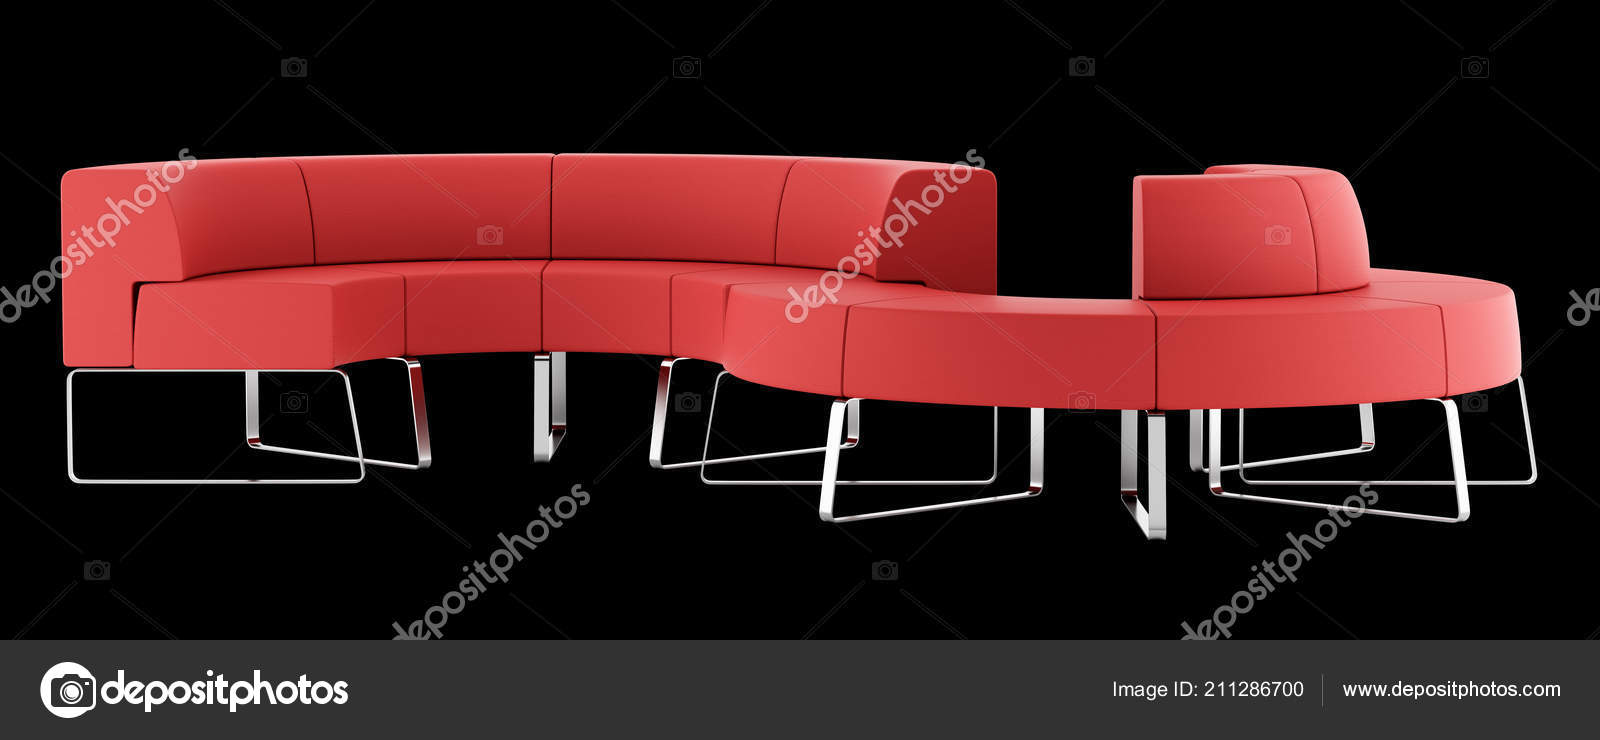 Fabulous Red Waiting Couch Isolated Black Background Illustration Machost Co Dining Chair Design Ideas Machostcouk